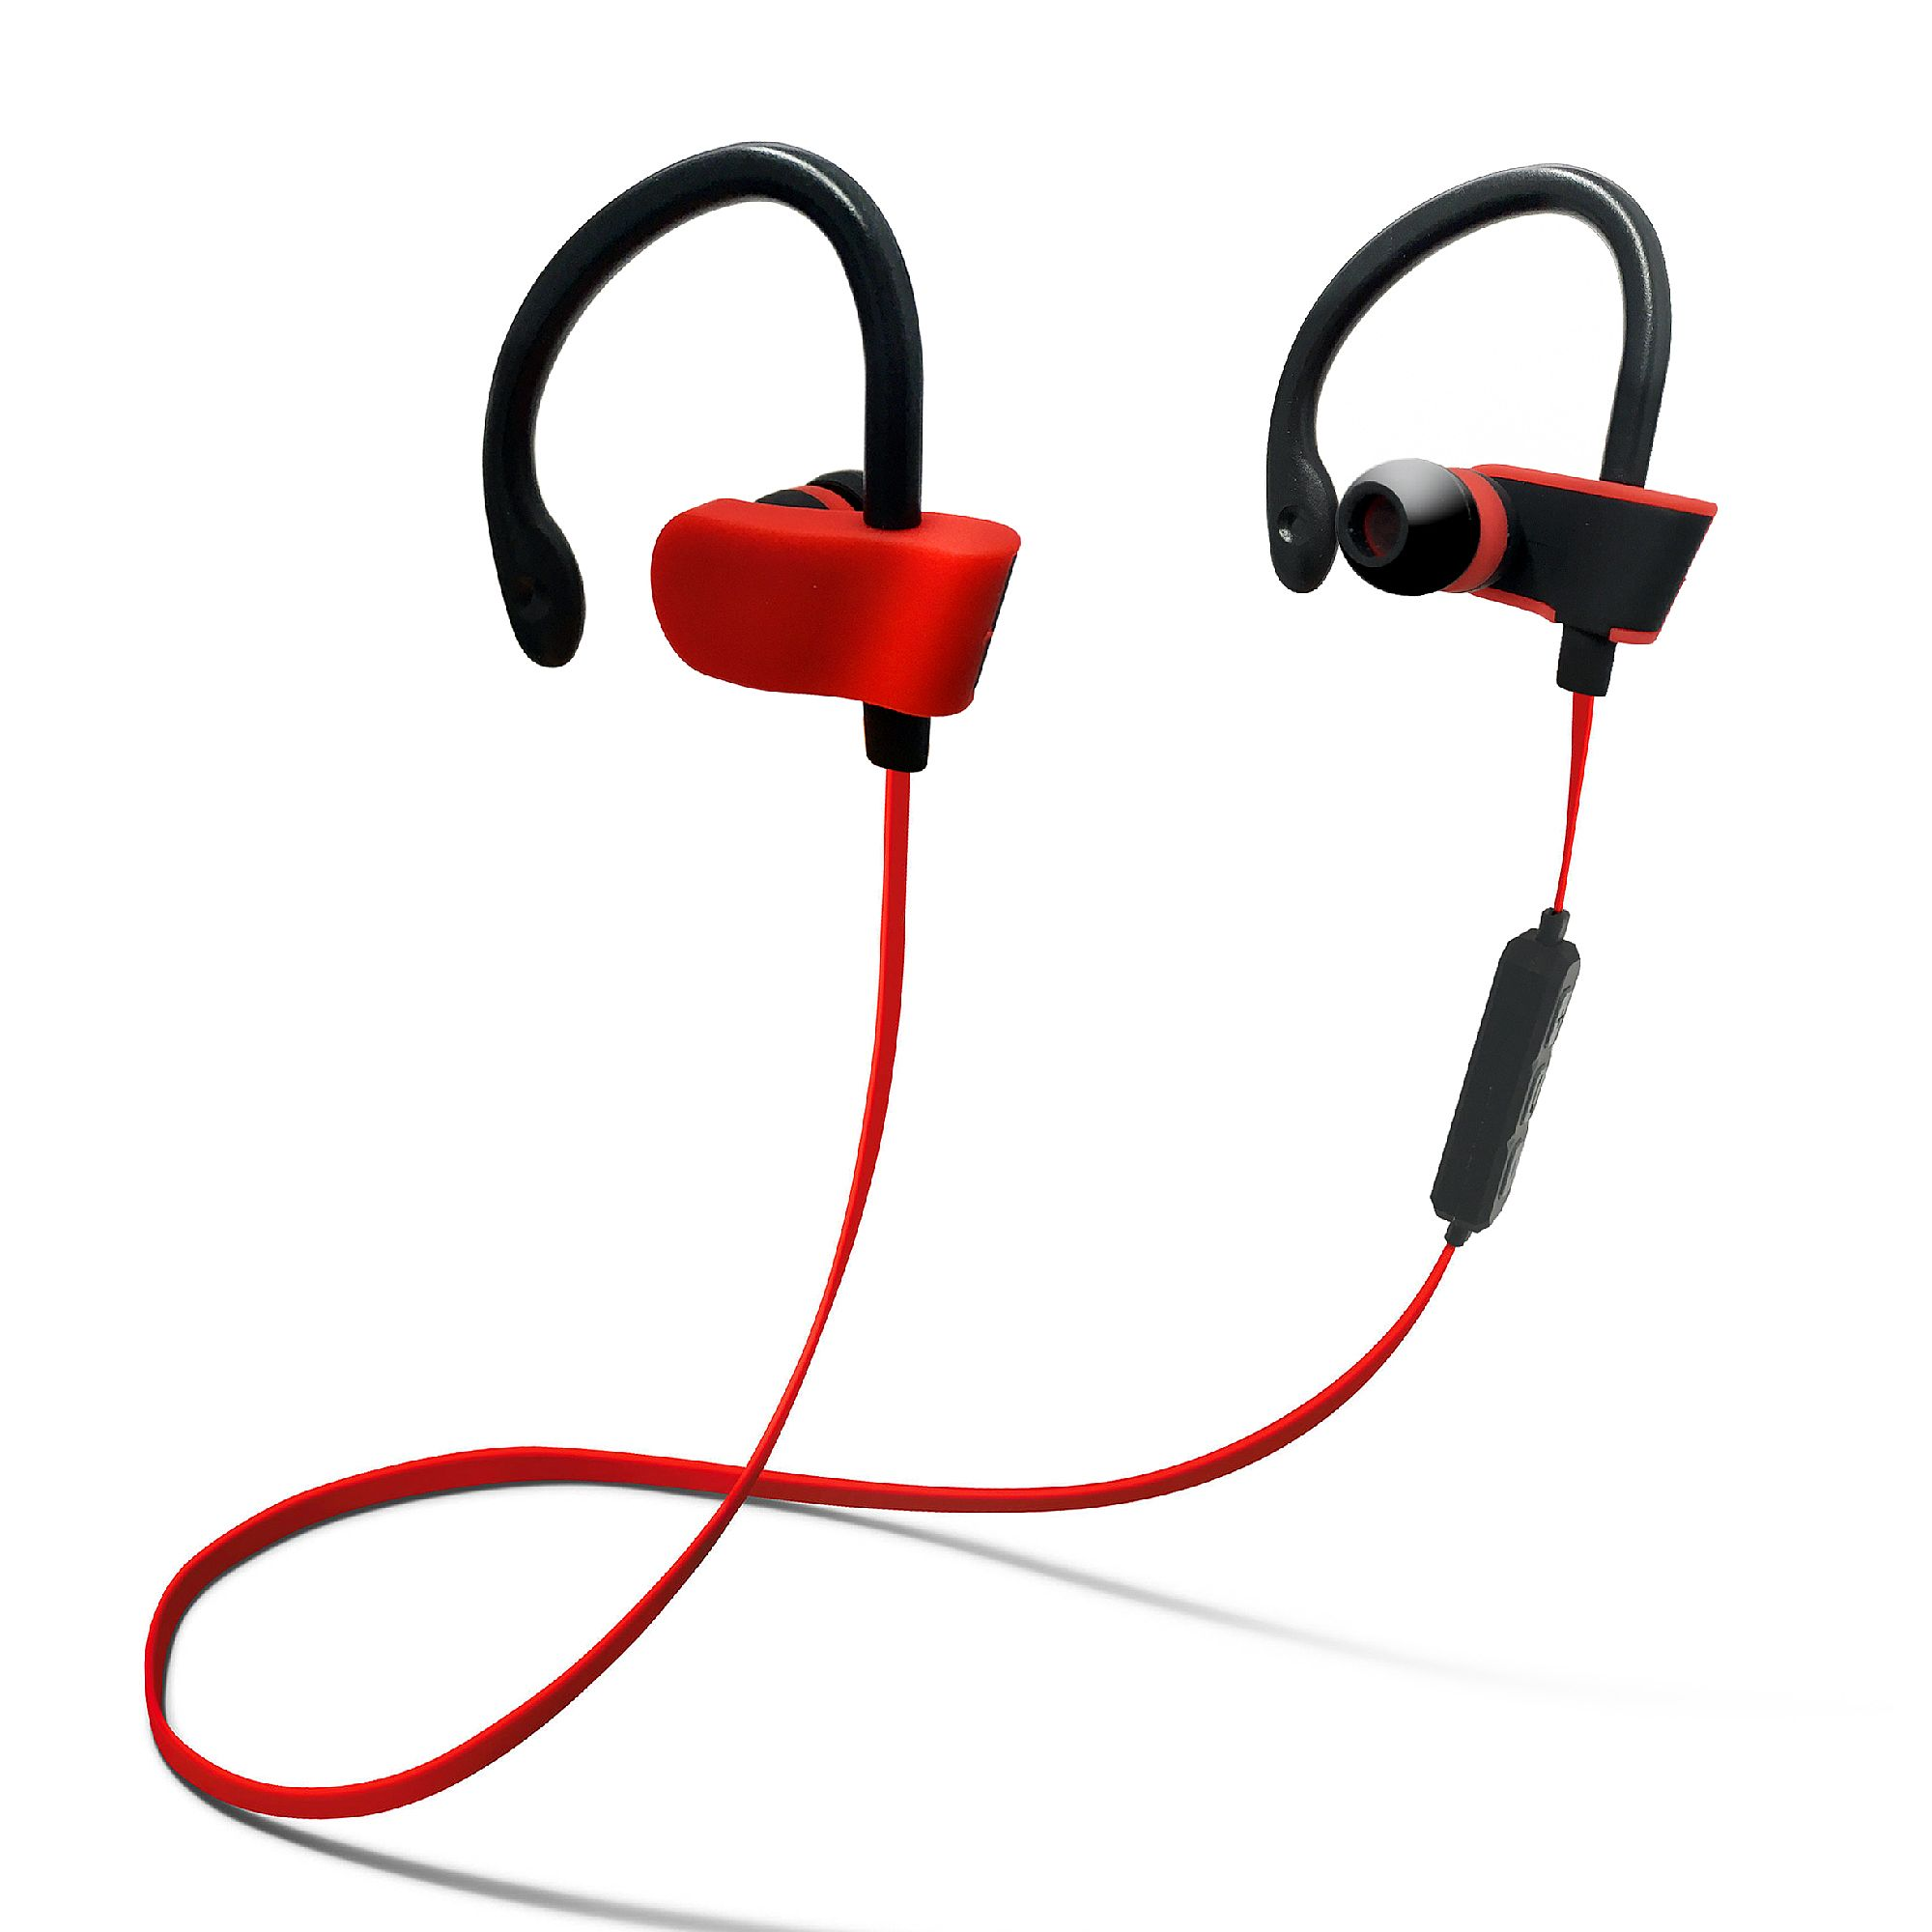 jarv bthl 52 bluetooth headphones with built in mic and volume control red at. Black Bedroom Furniture Sets. Home Design Ideas